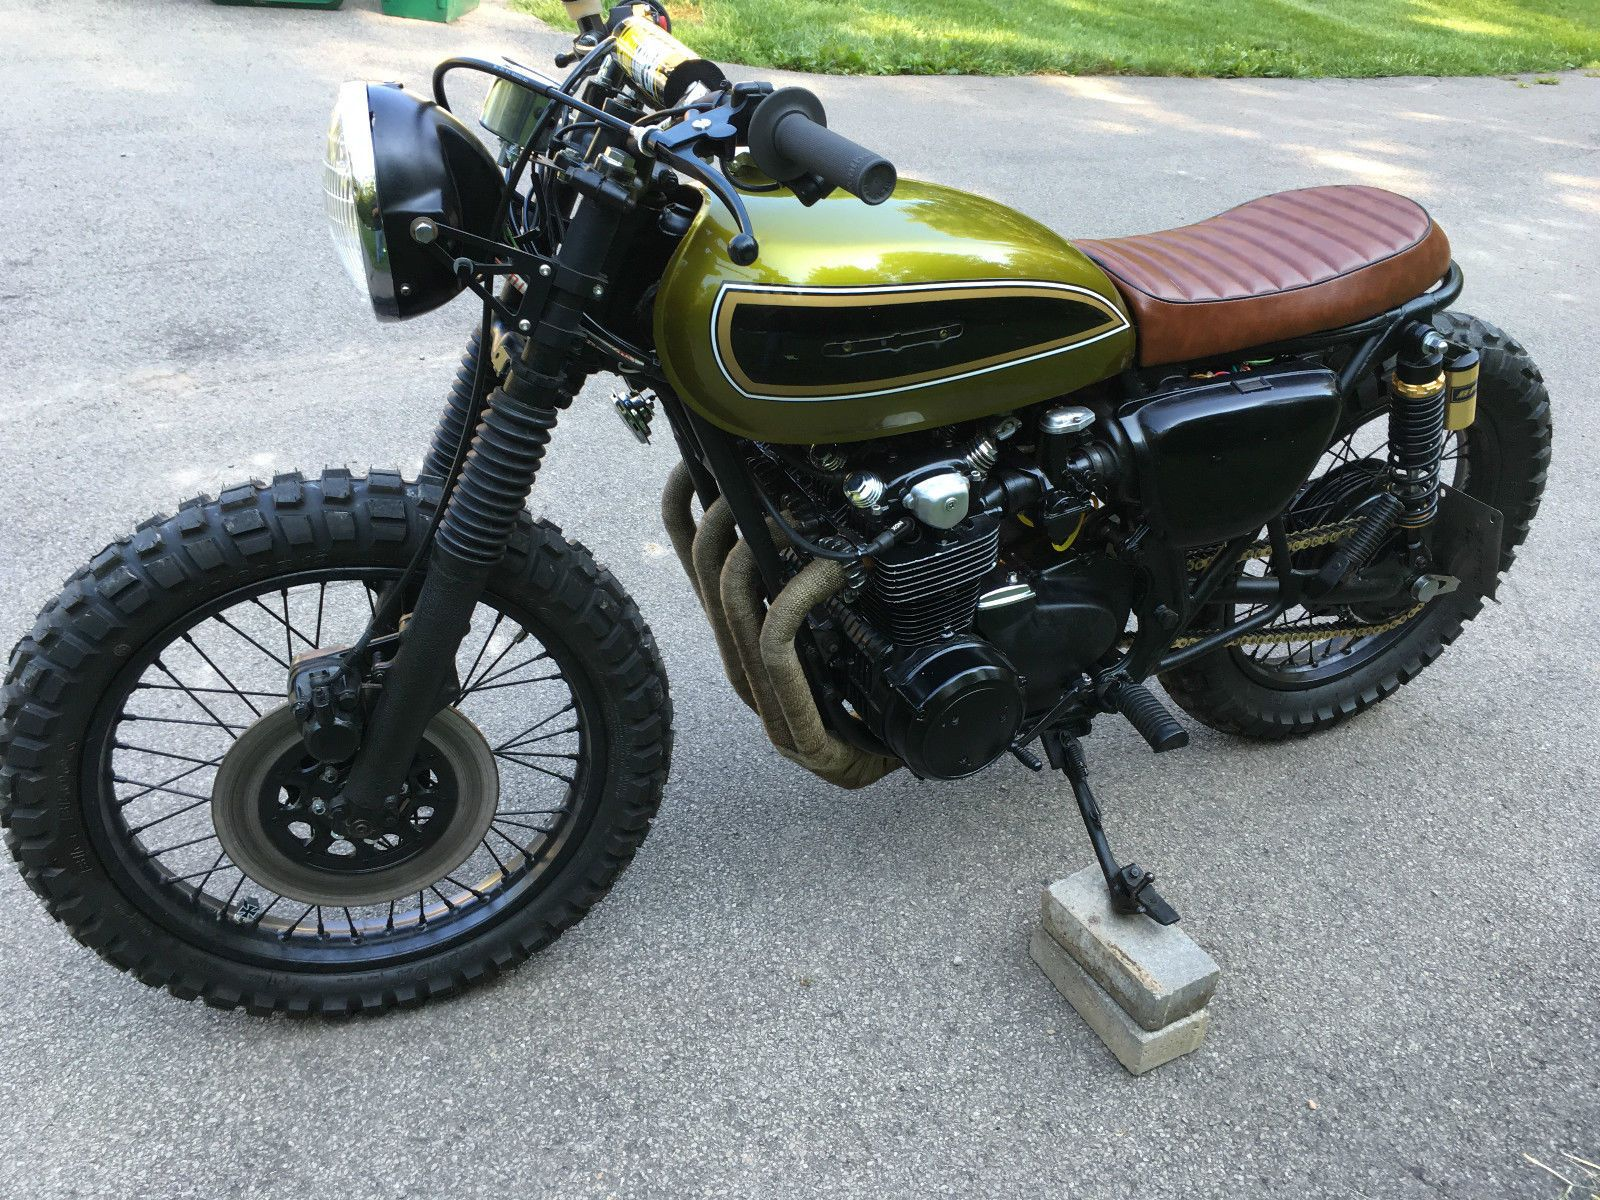 1978 Cb550 Wiring Harness Manual Of Diagram Honda Cafe Racers For Sale Pinterest Racer Rh Com